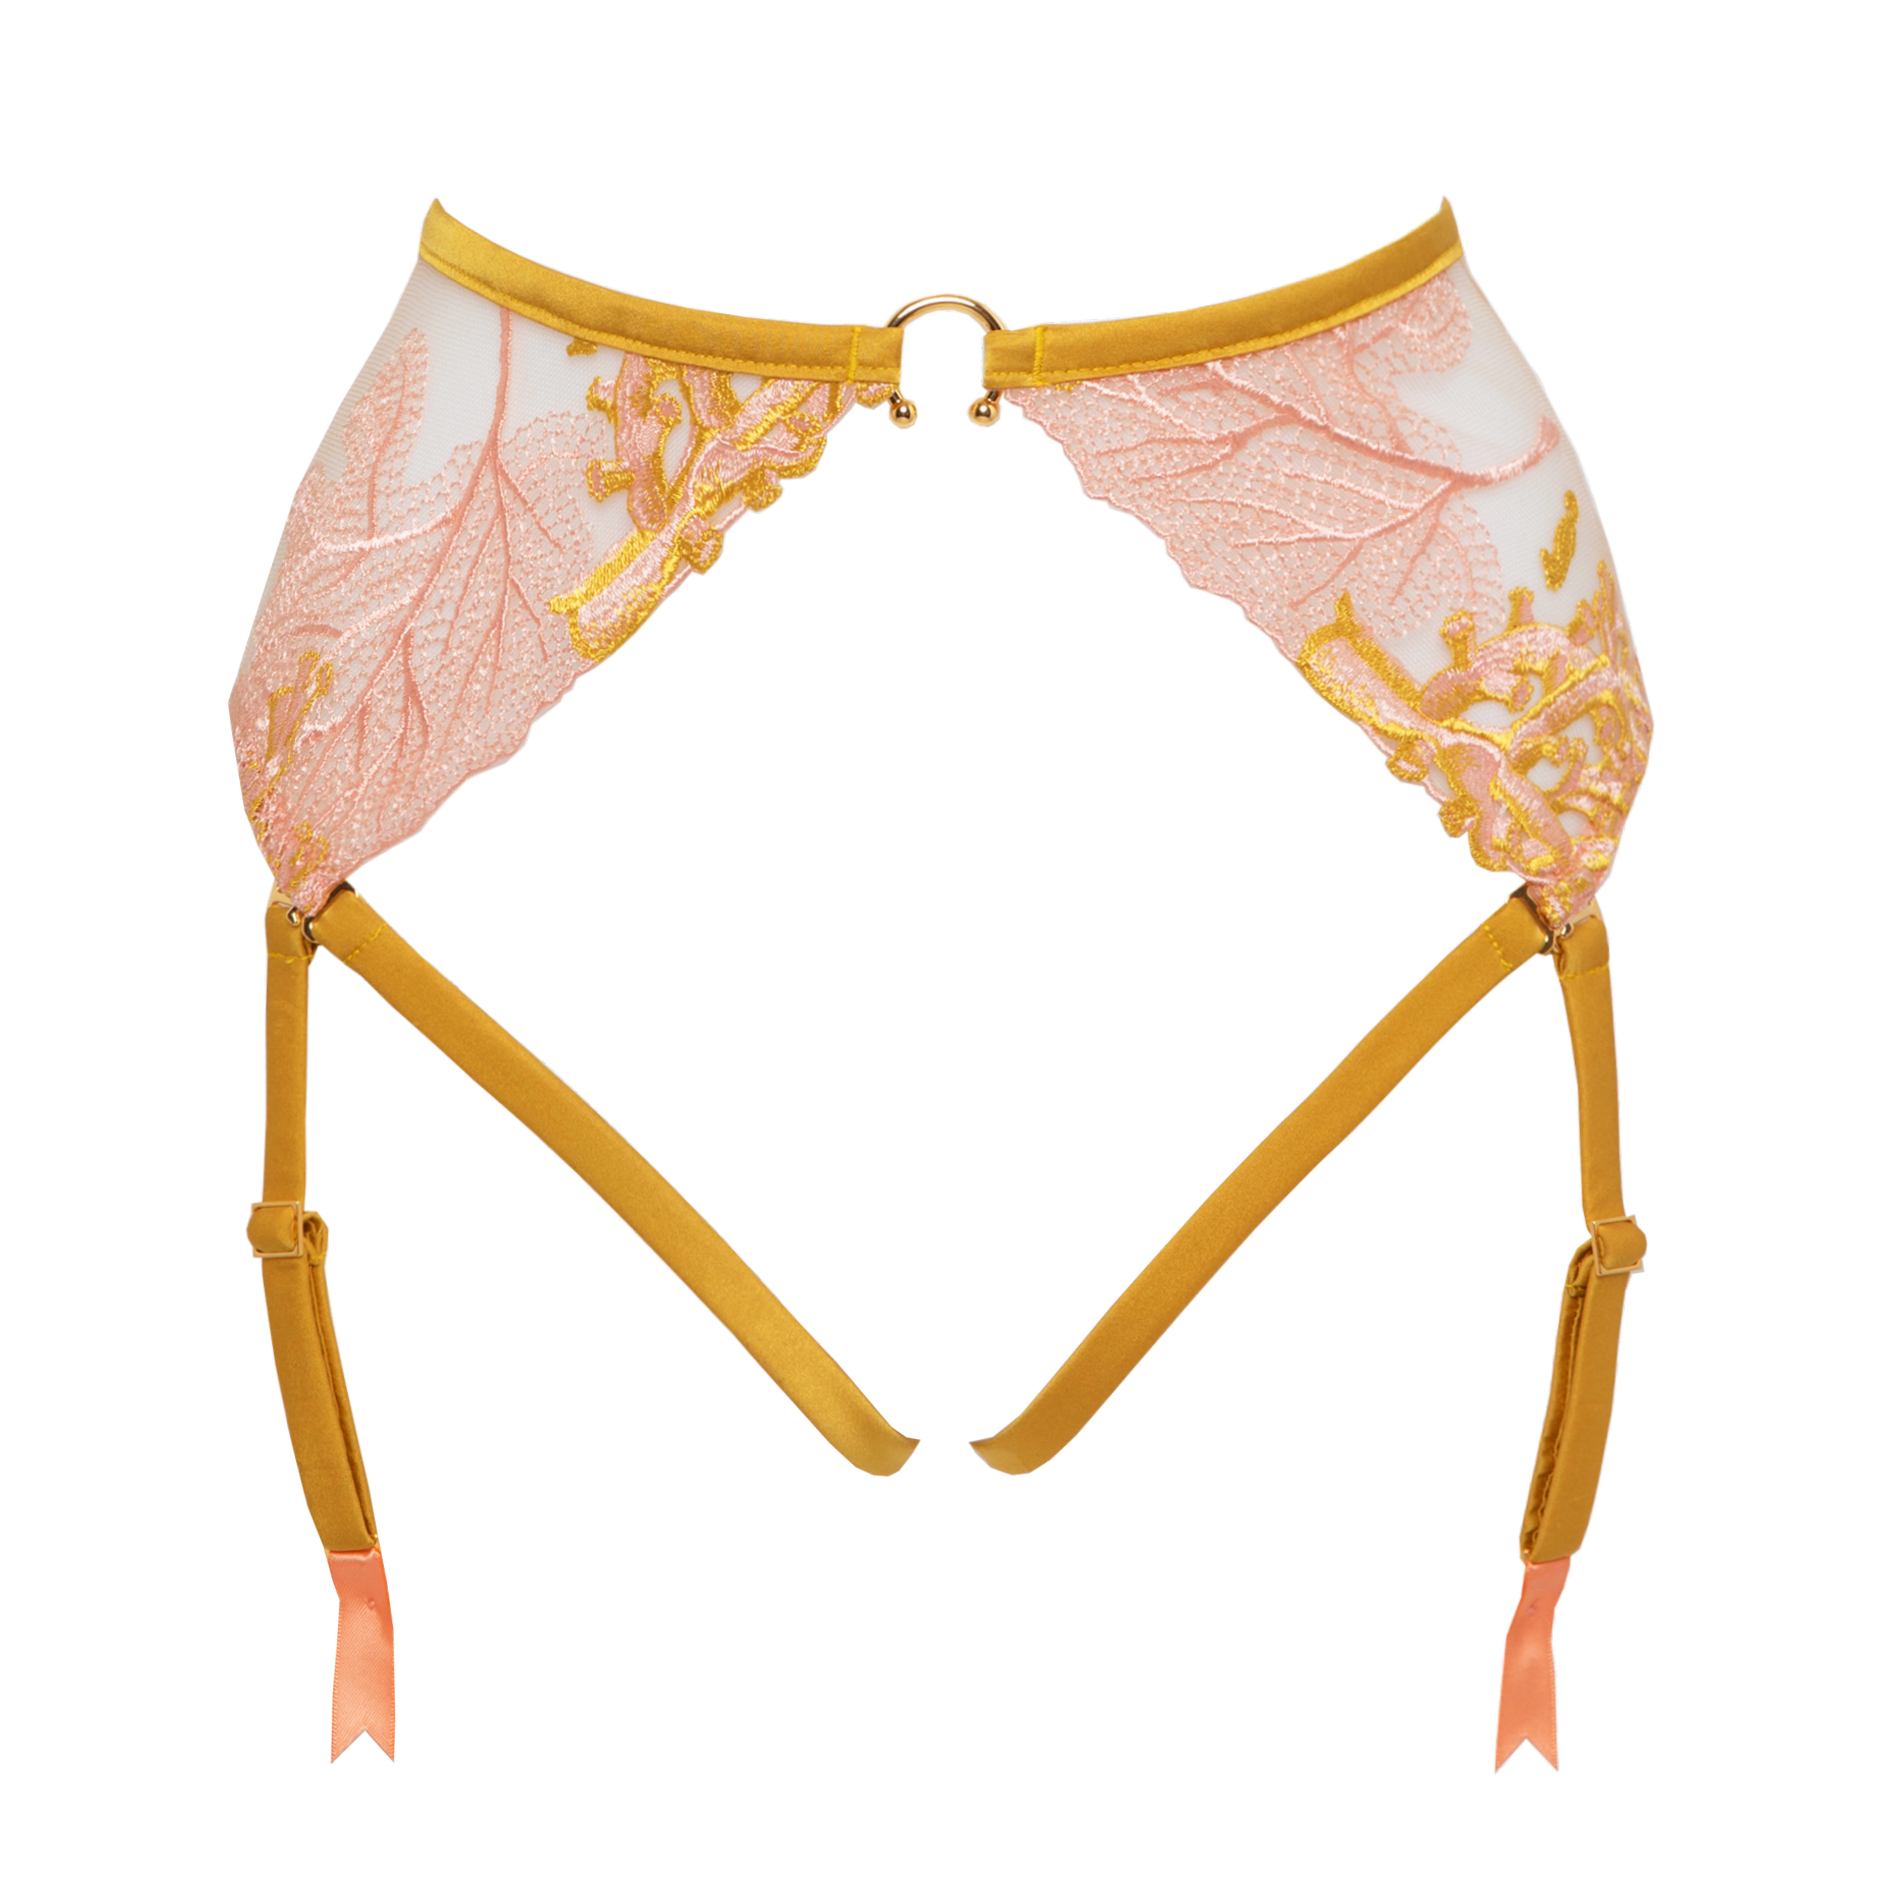 Studio Pia naida harness suspender bum and suspender strap coral yellow front